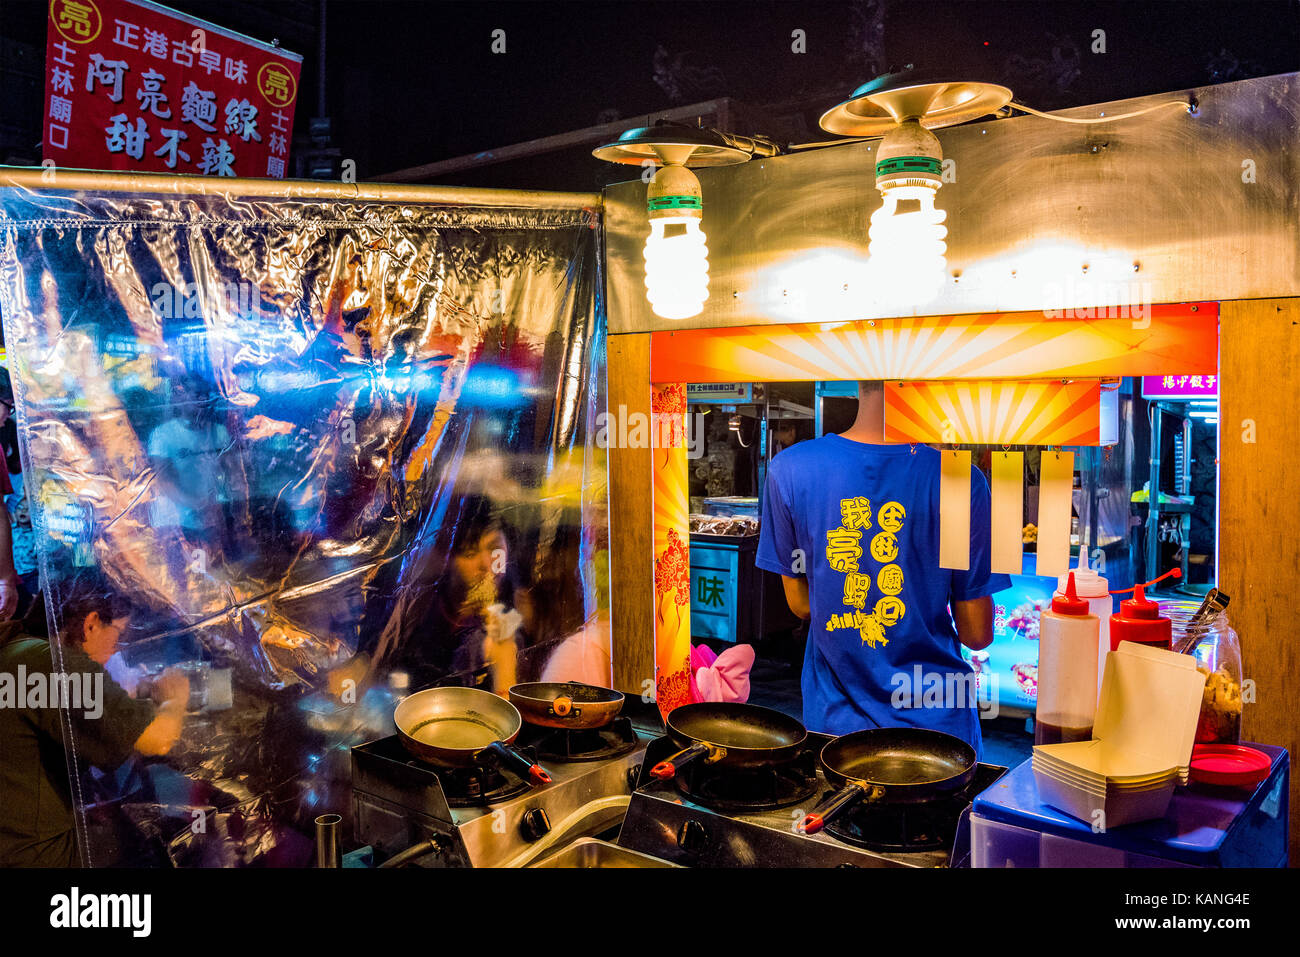 TAIPEI, TAIWAN - JULY 11: This is a night market food stand which